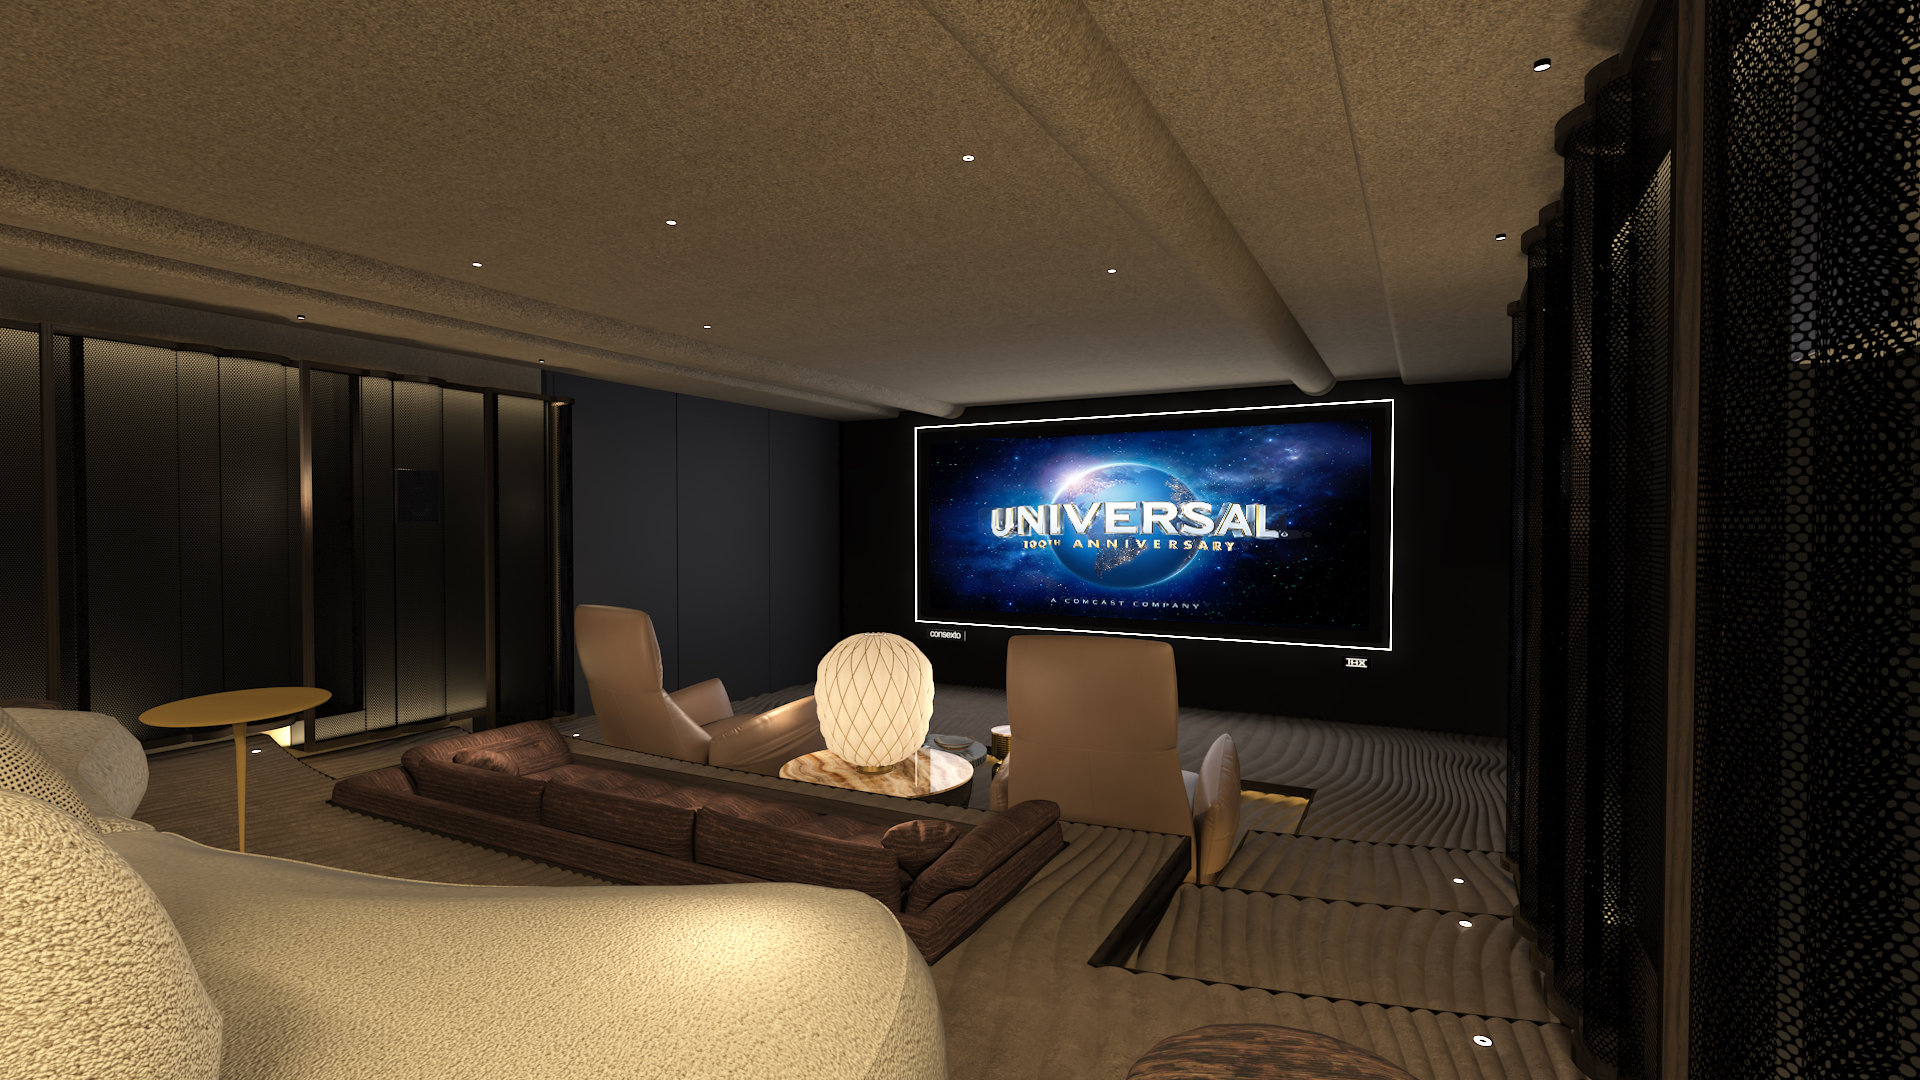 Skyfall-Project Image